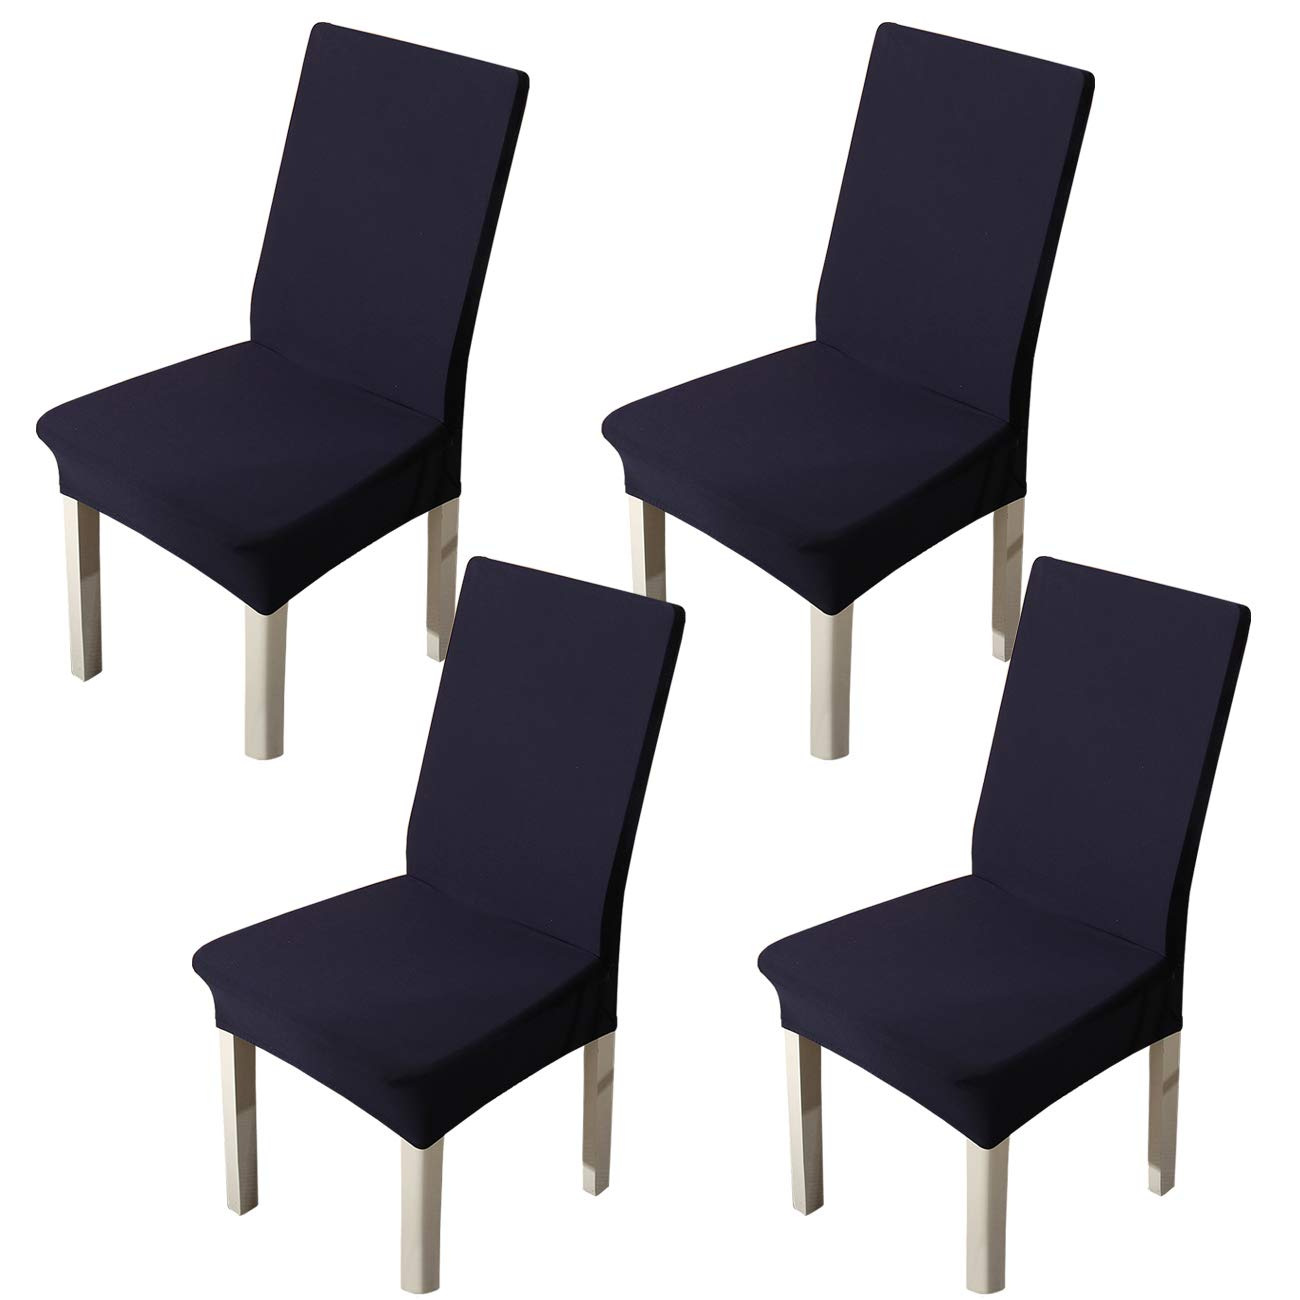 Ogrmar 4PCS Stretch Removable Washable Dining Room Chair Protector Slipcovers/Home Decor Dining Room Seat Cover (Navy Blue)